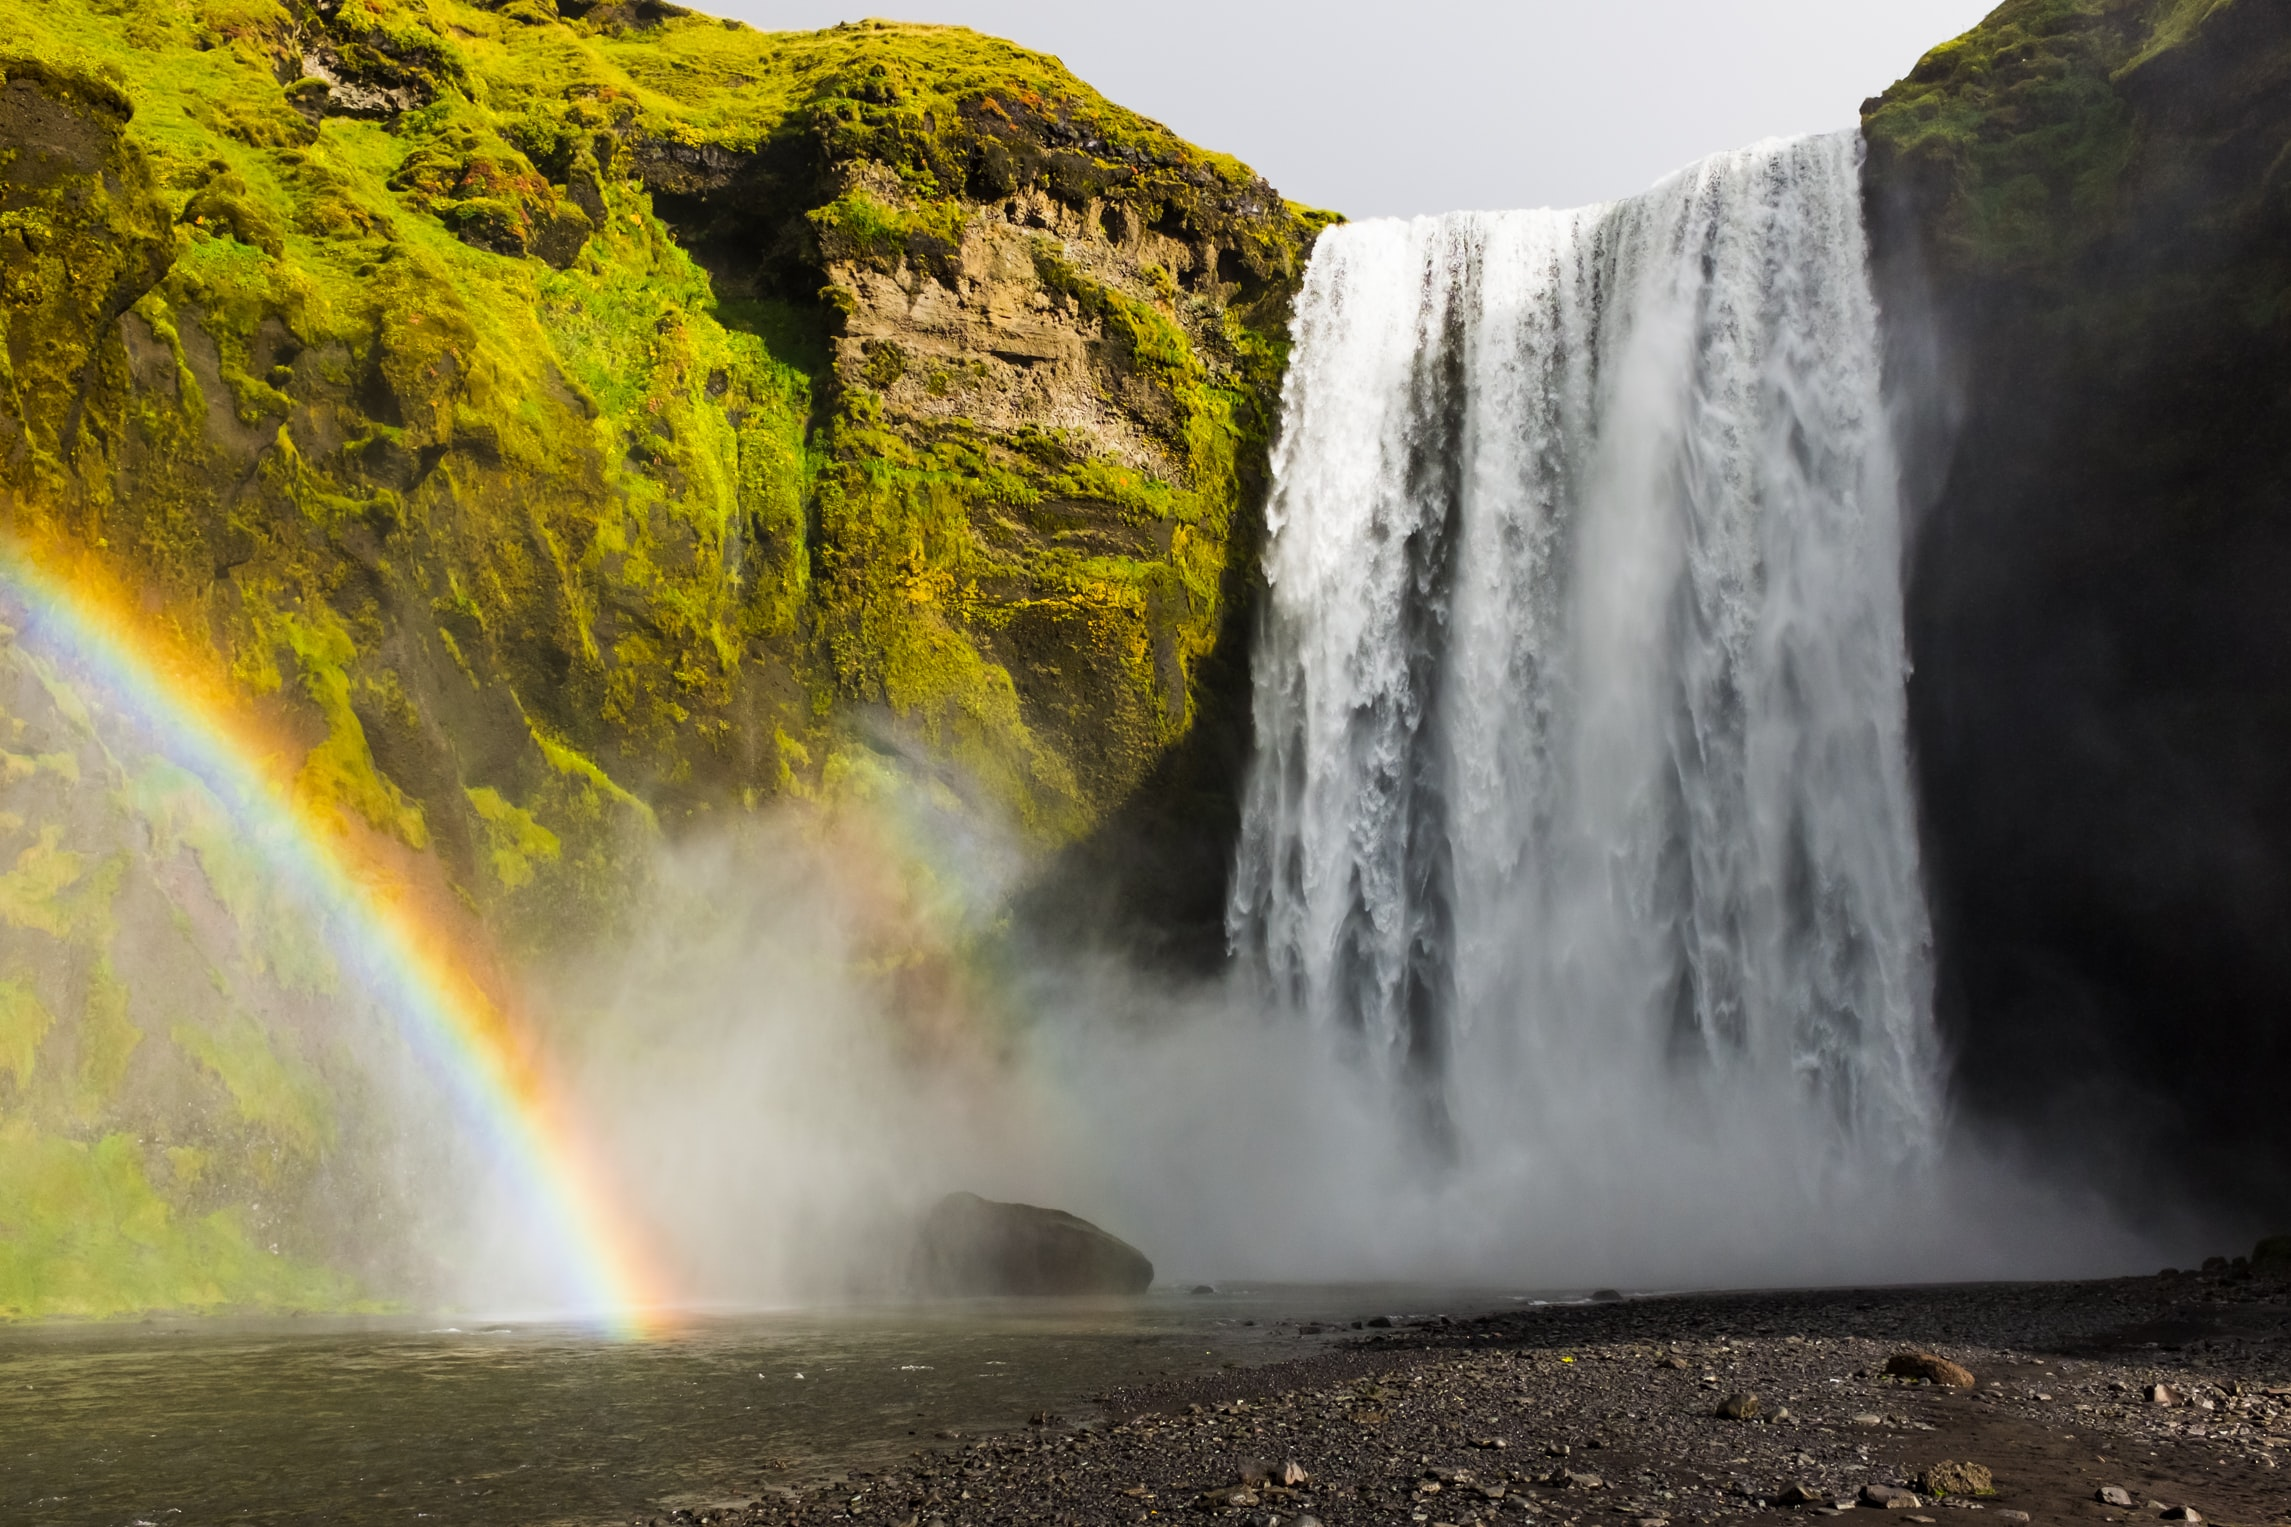 Skógafoss waterfall in Iceland with a rainbow